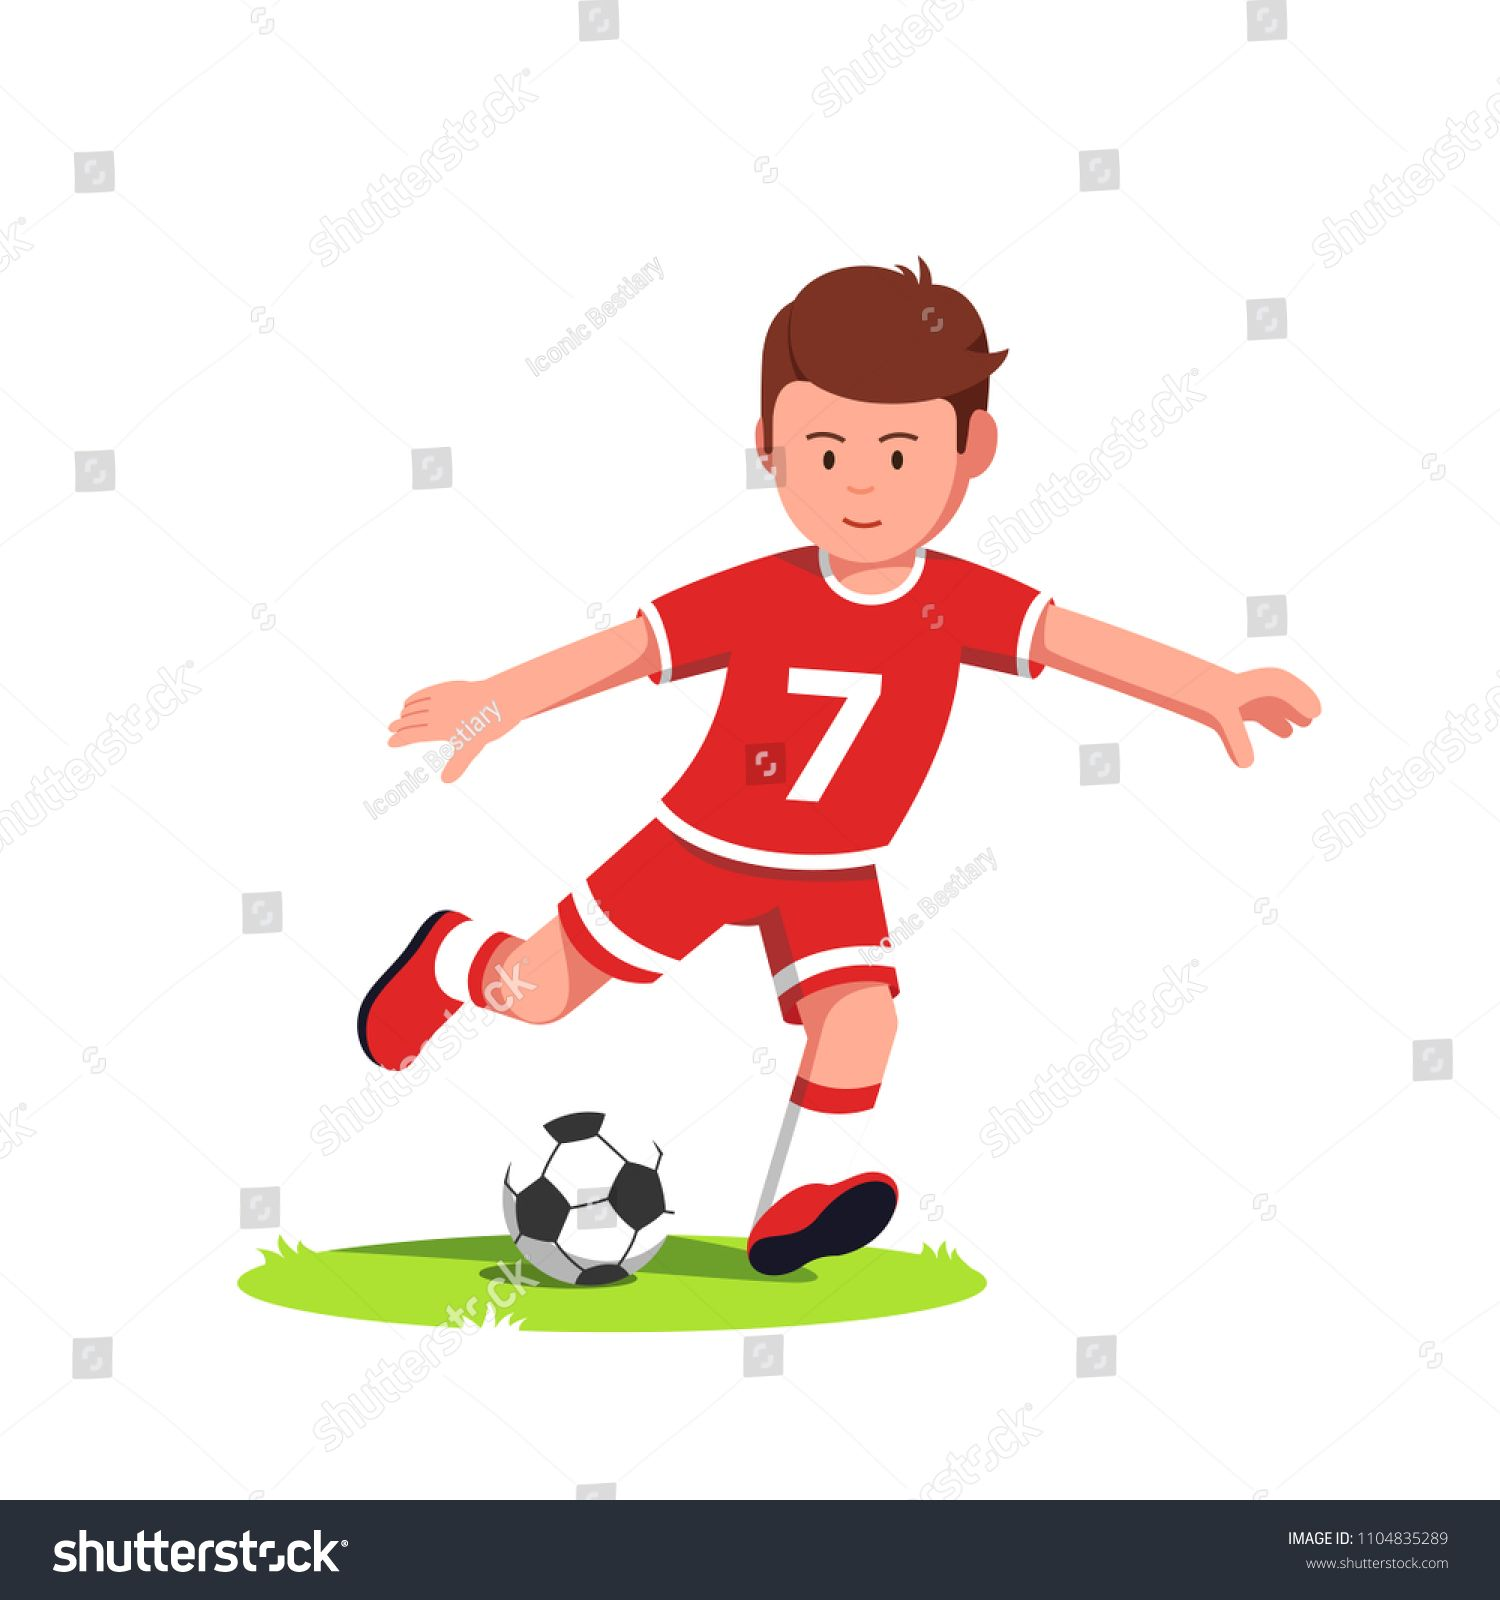 Teenage Soccer Player Boy Playing And Kicking Ball On The Run On Football Field Grass Young Soccer Player Boy Kid Wearin Boys Playing Soccer Players Kids Wear